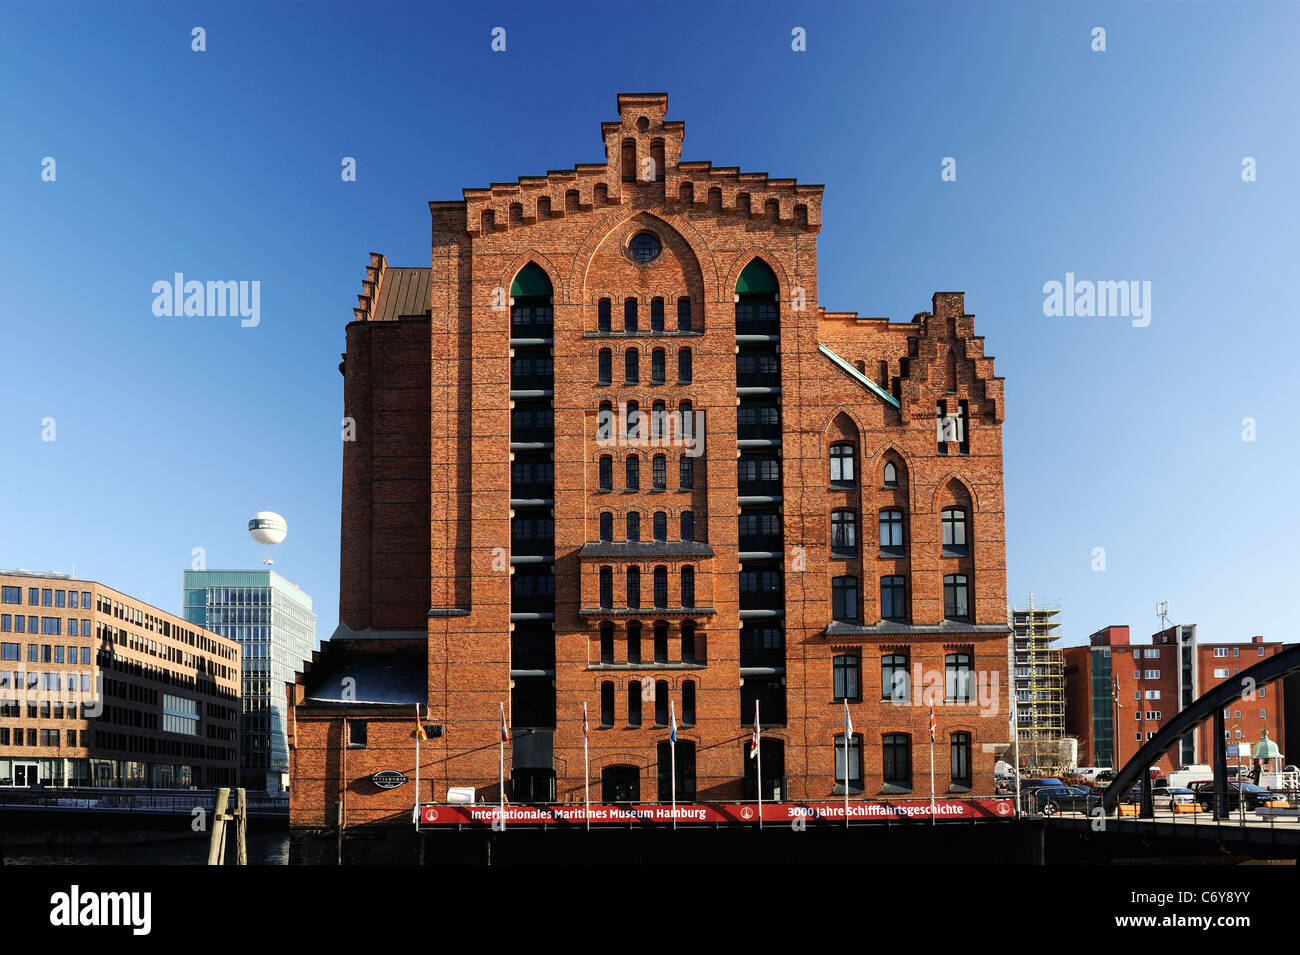 Hafen City museum - Stock Image